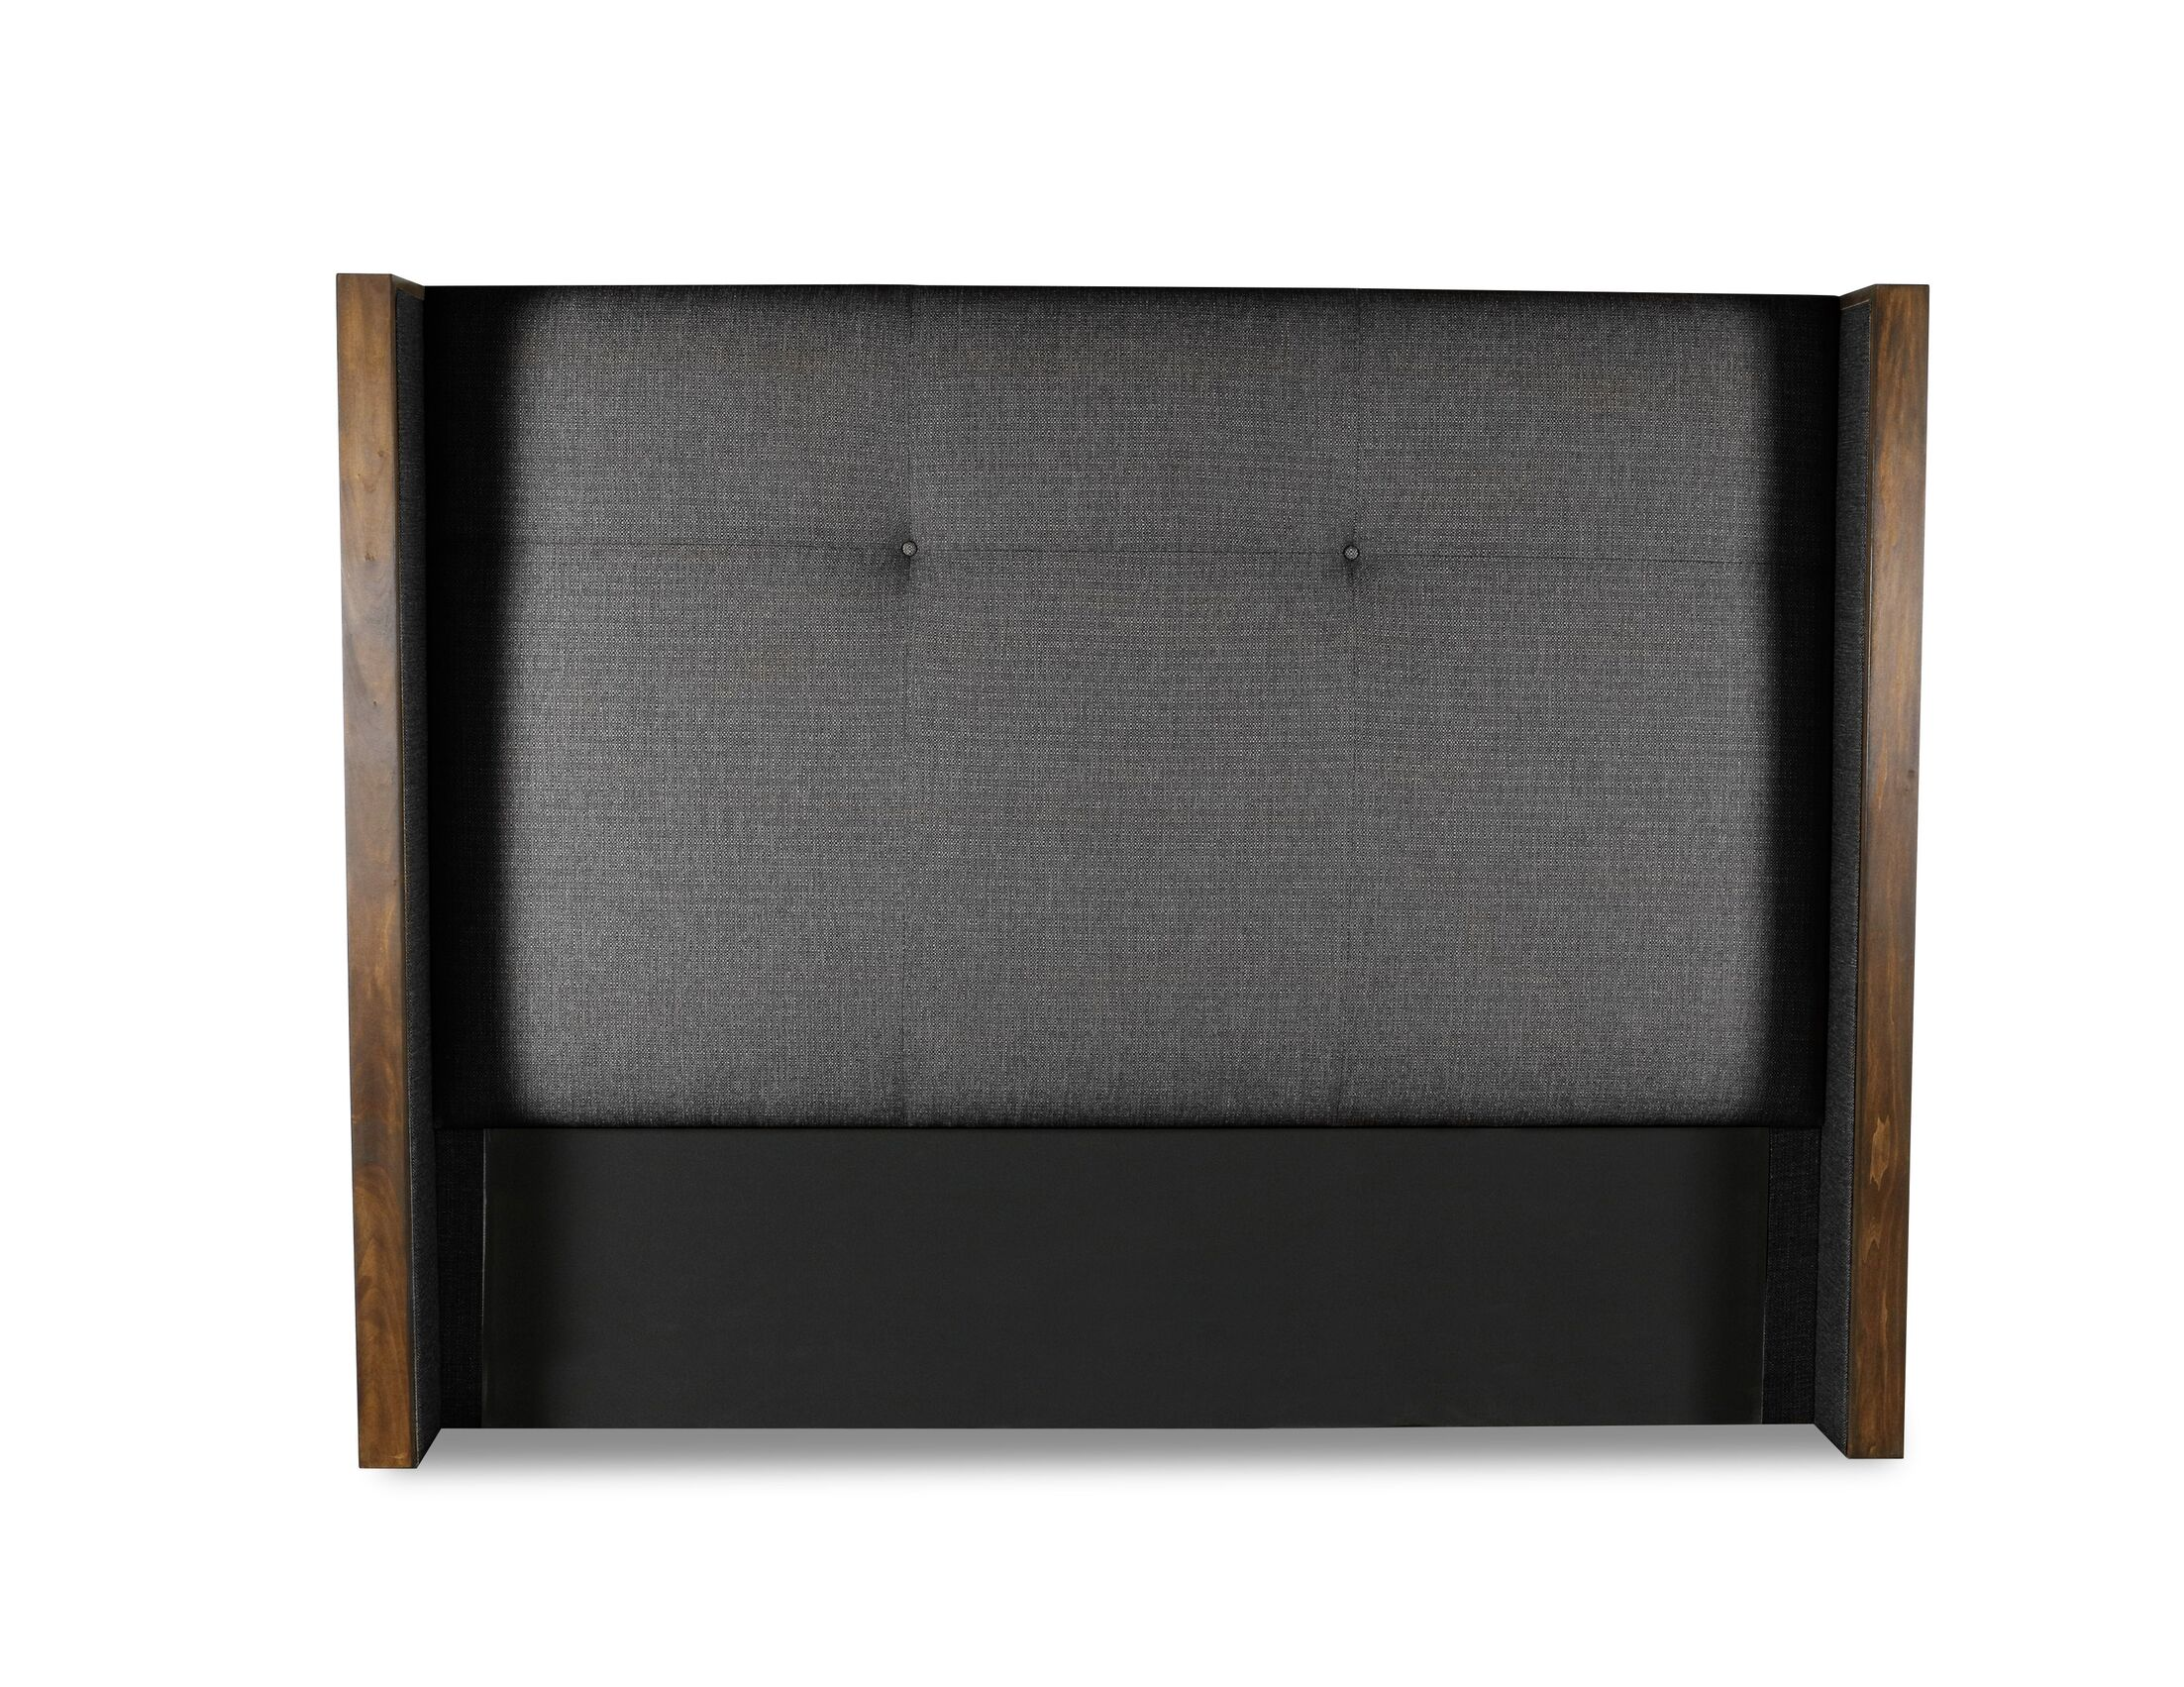 Hank Simple Tufted Upholstered Wingback Headboard Color: Charcoal, Size: Mid Height King